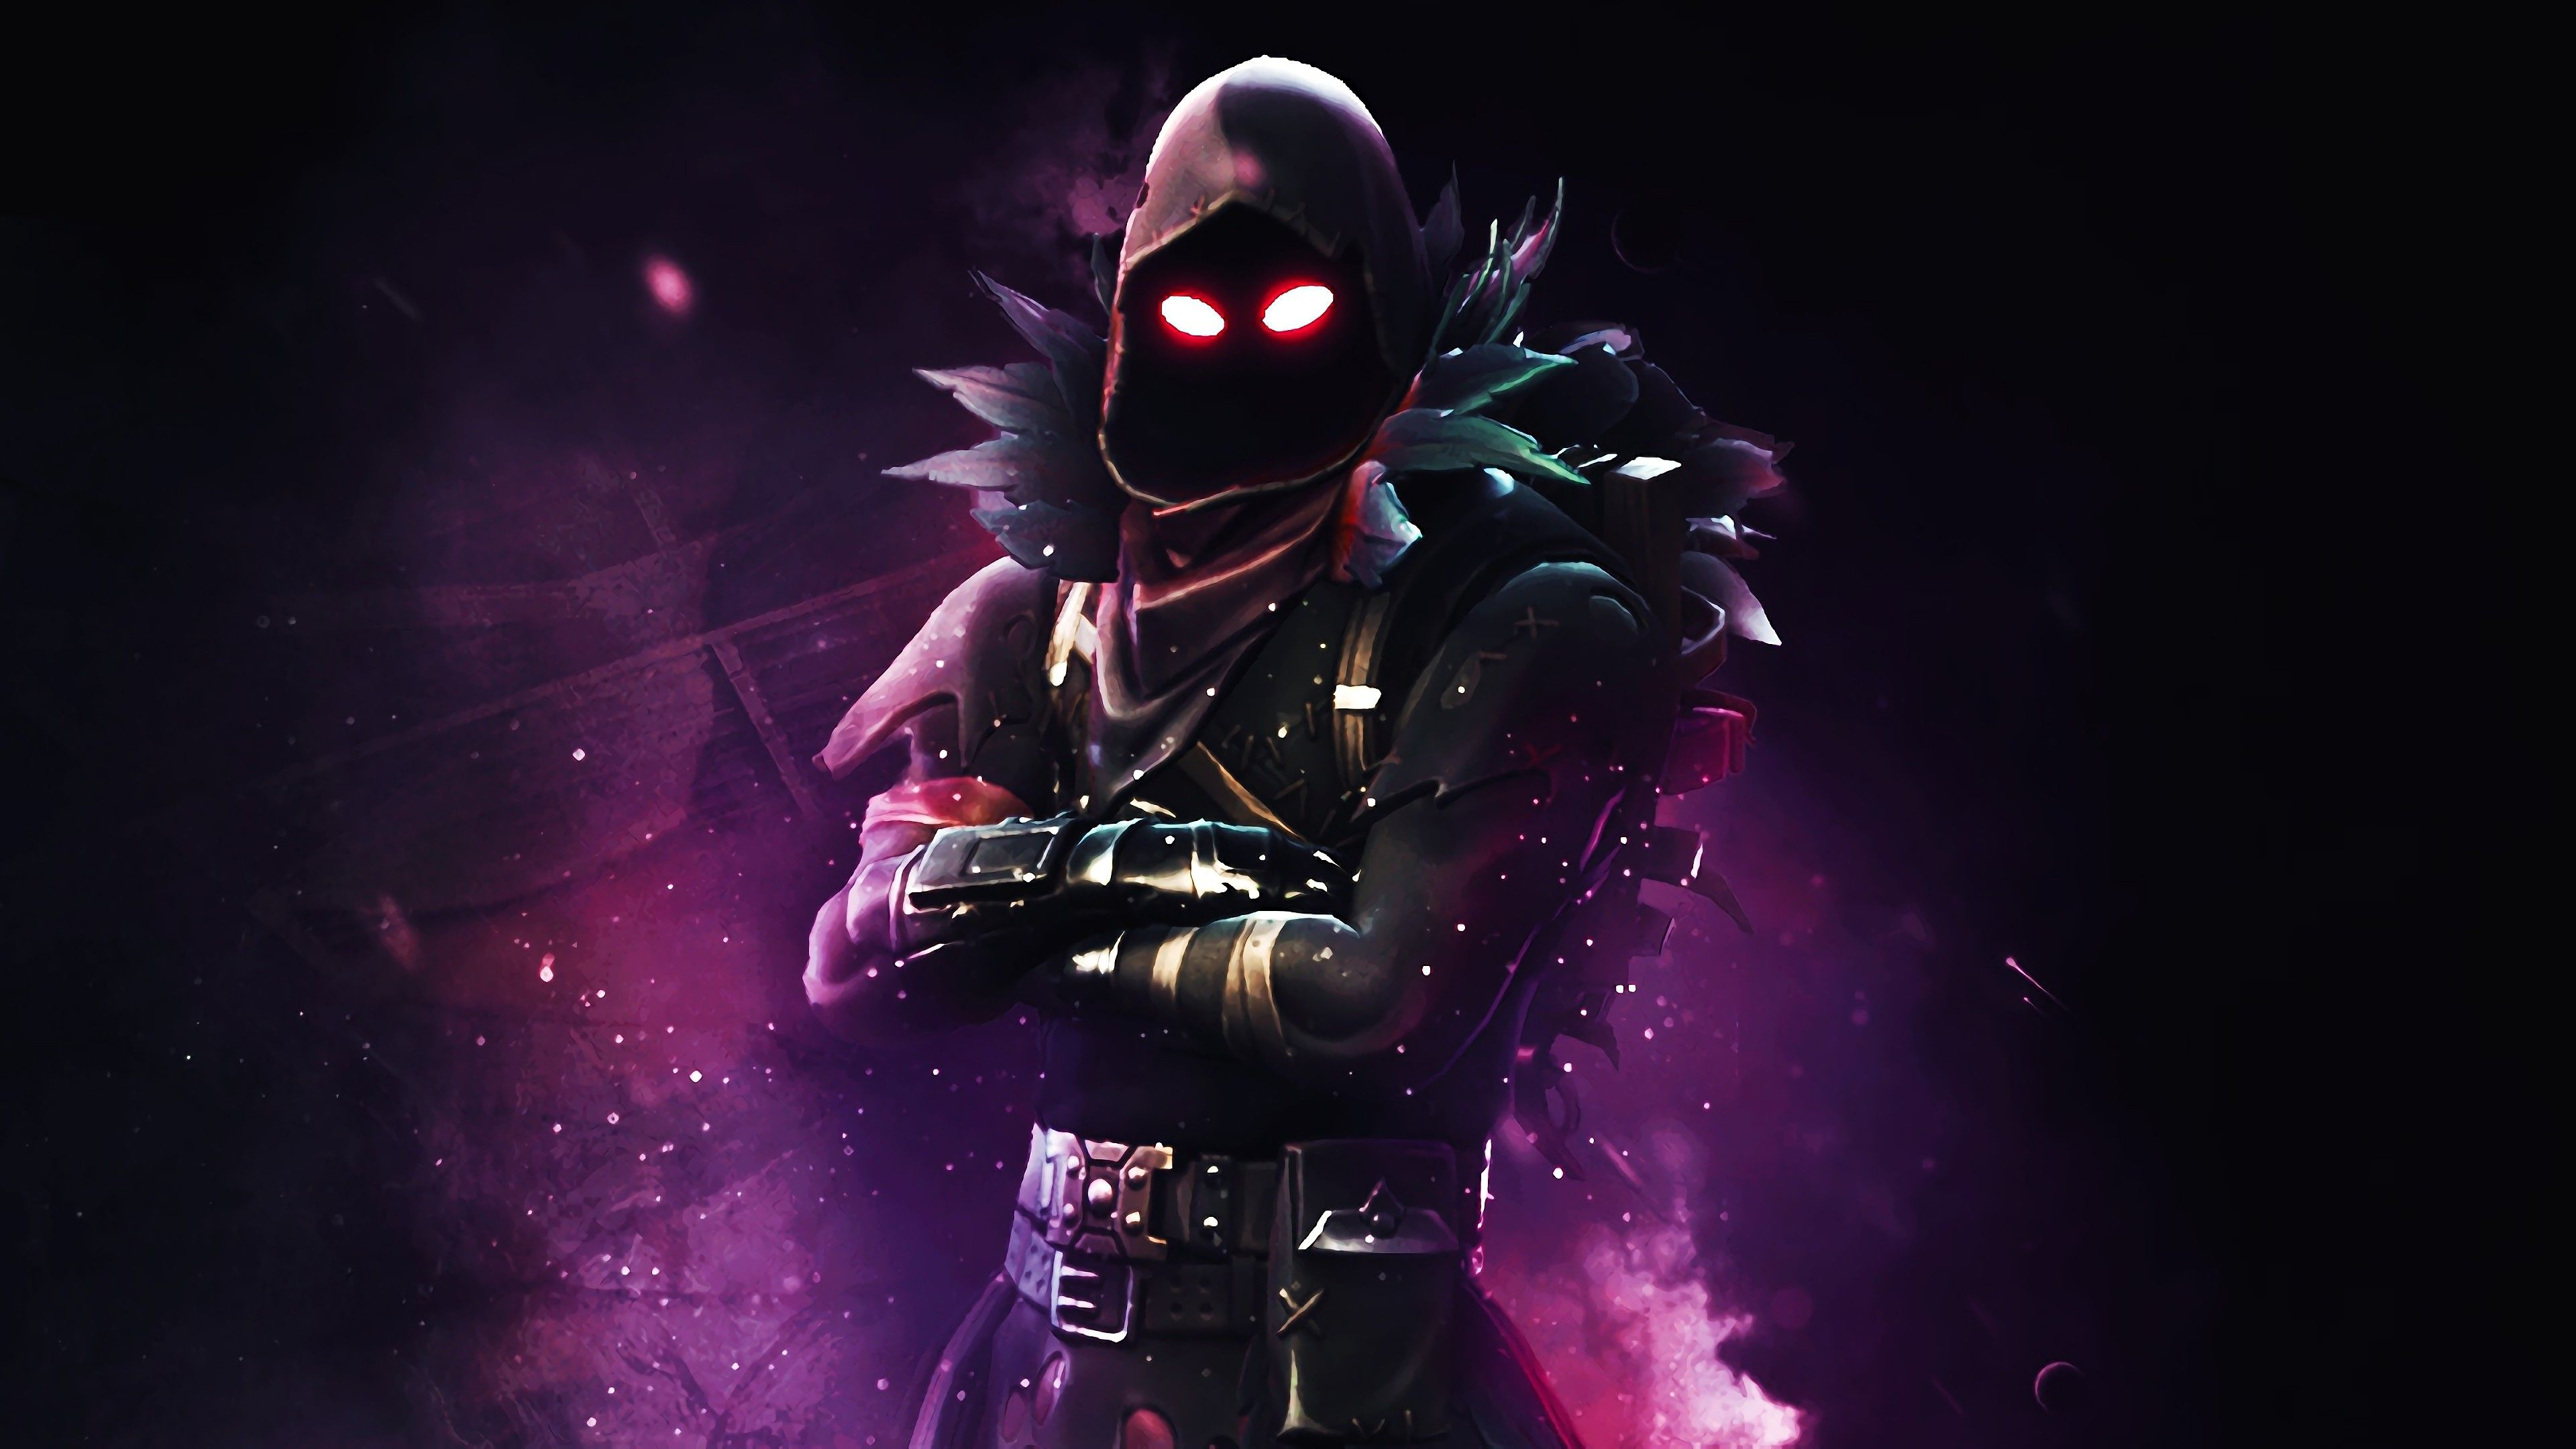 Raven Fortnite Battle Royale 4K Background, HD Games 4K Wallpapers